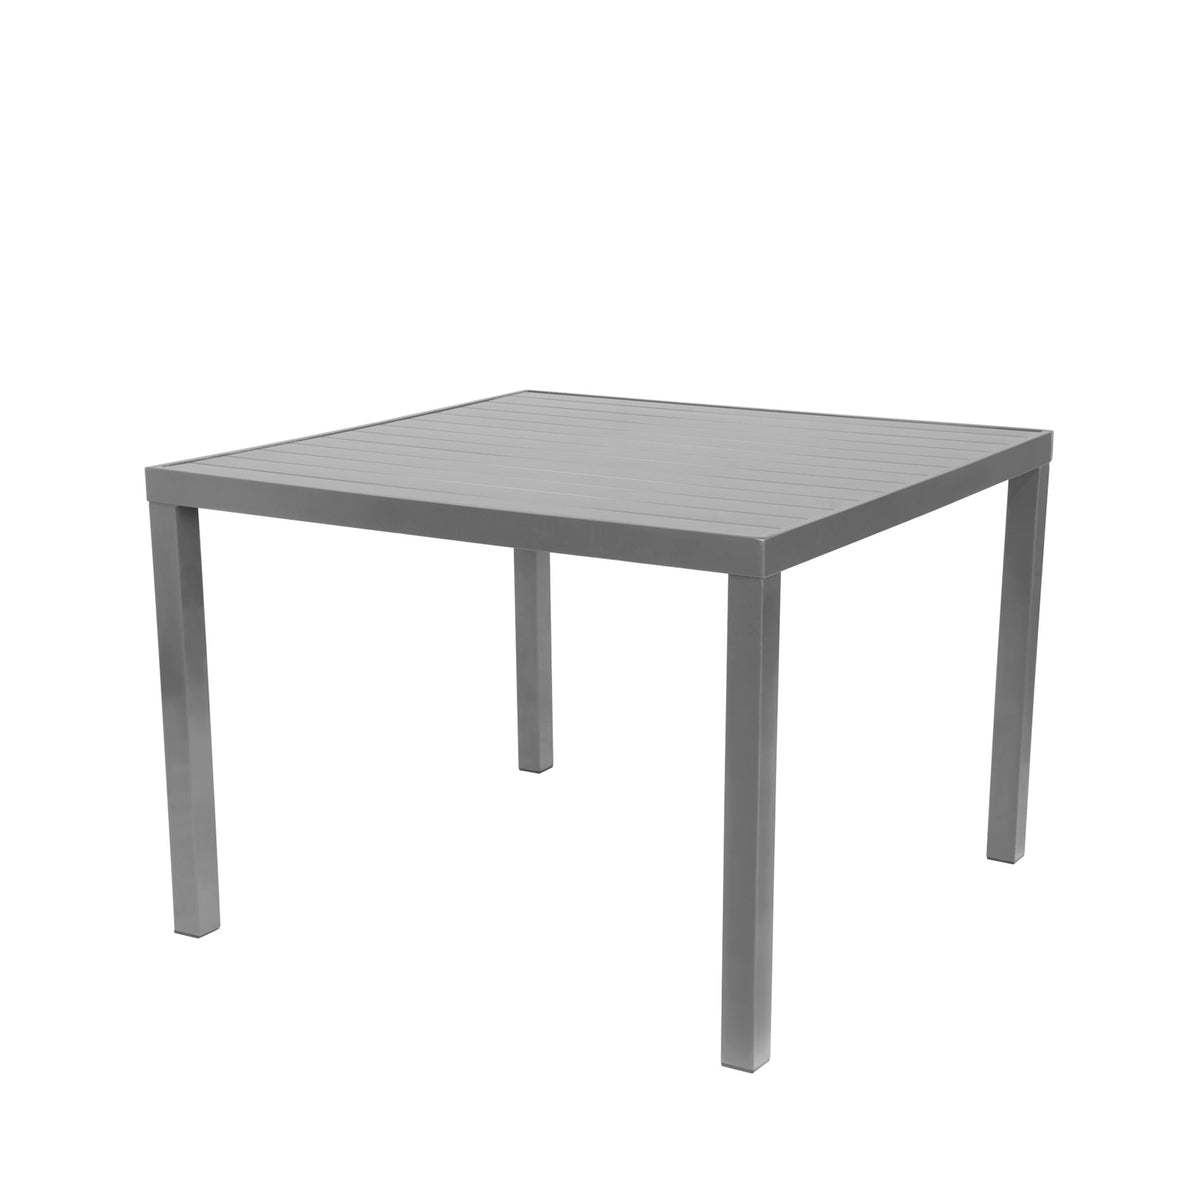 "Source Furniture Fusion Square 32"" x 32"" Dining Table Top"